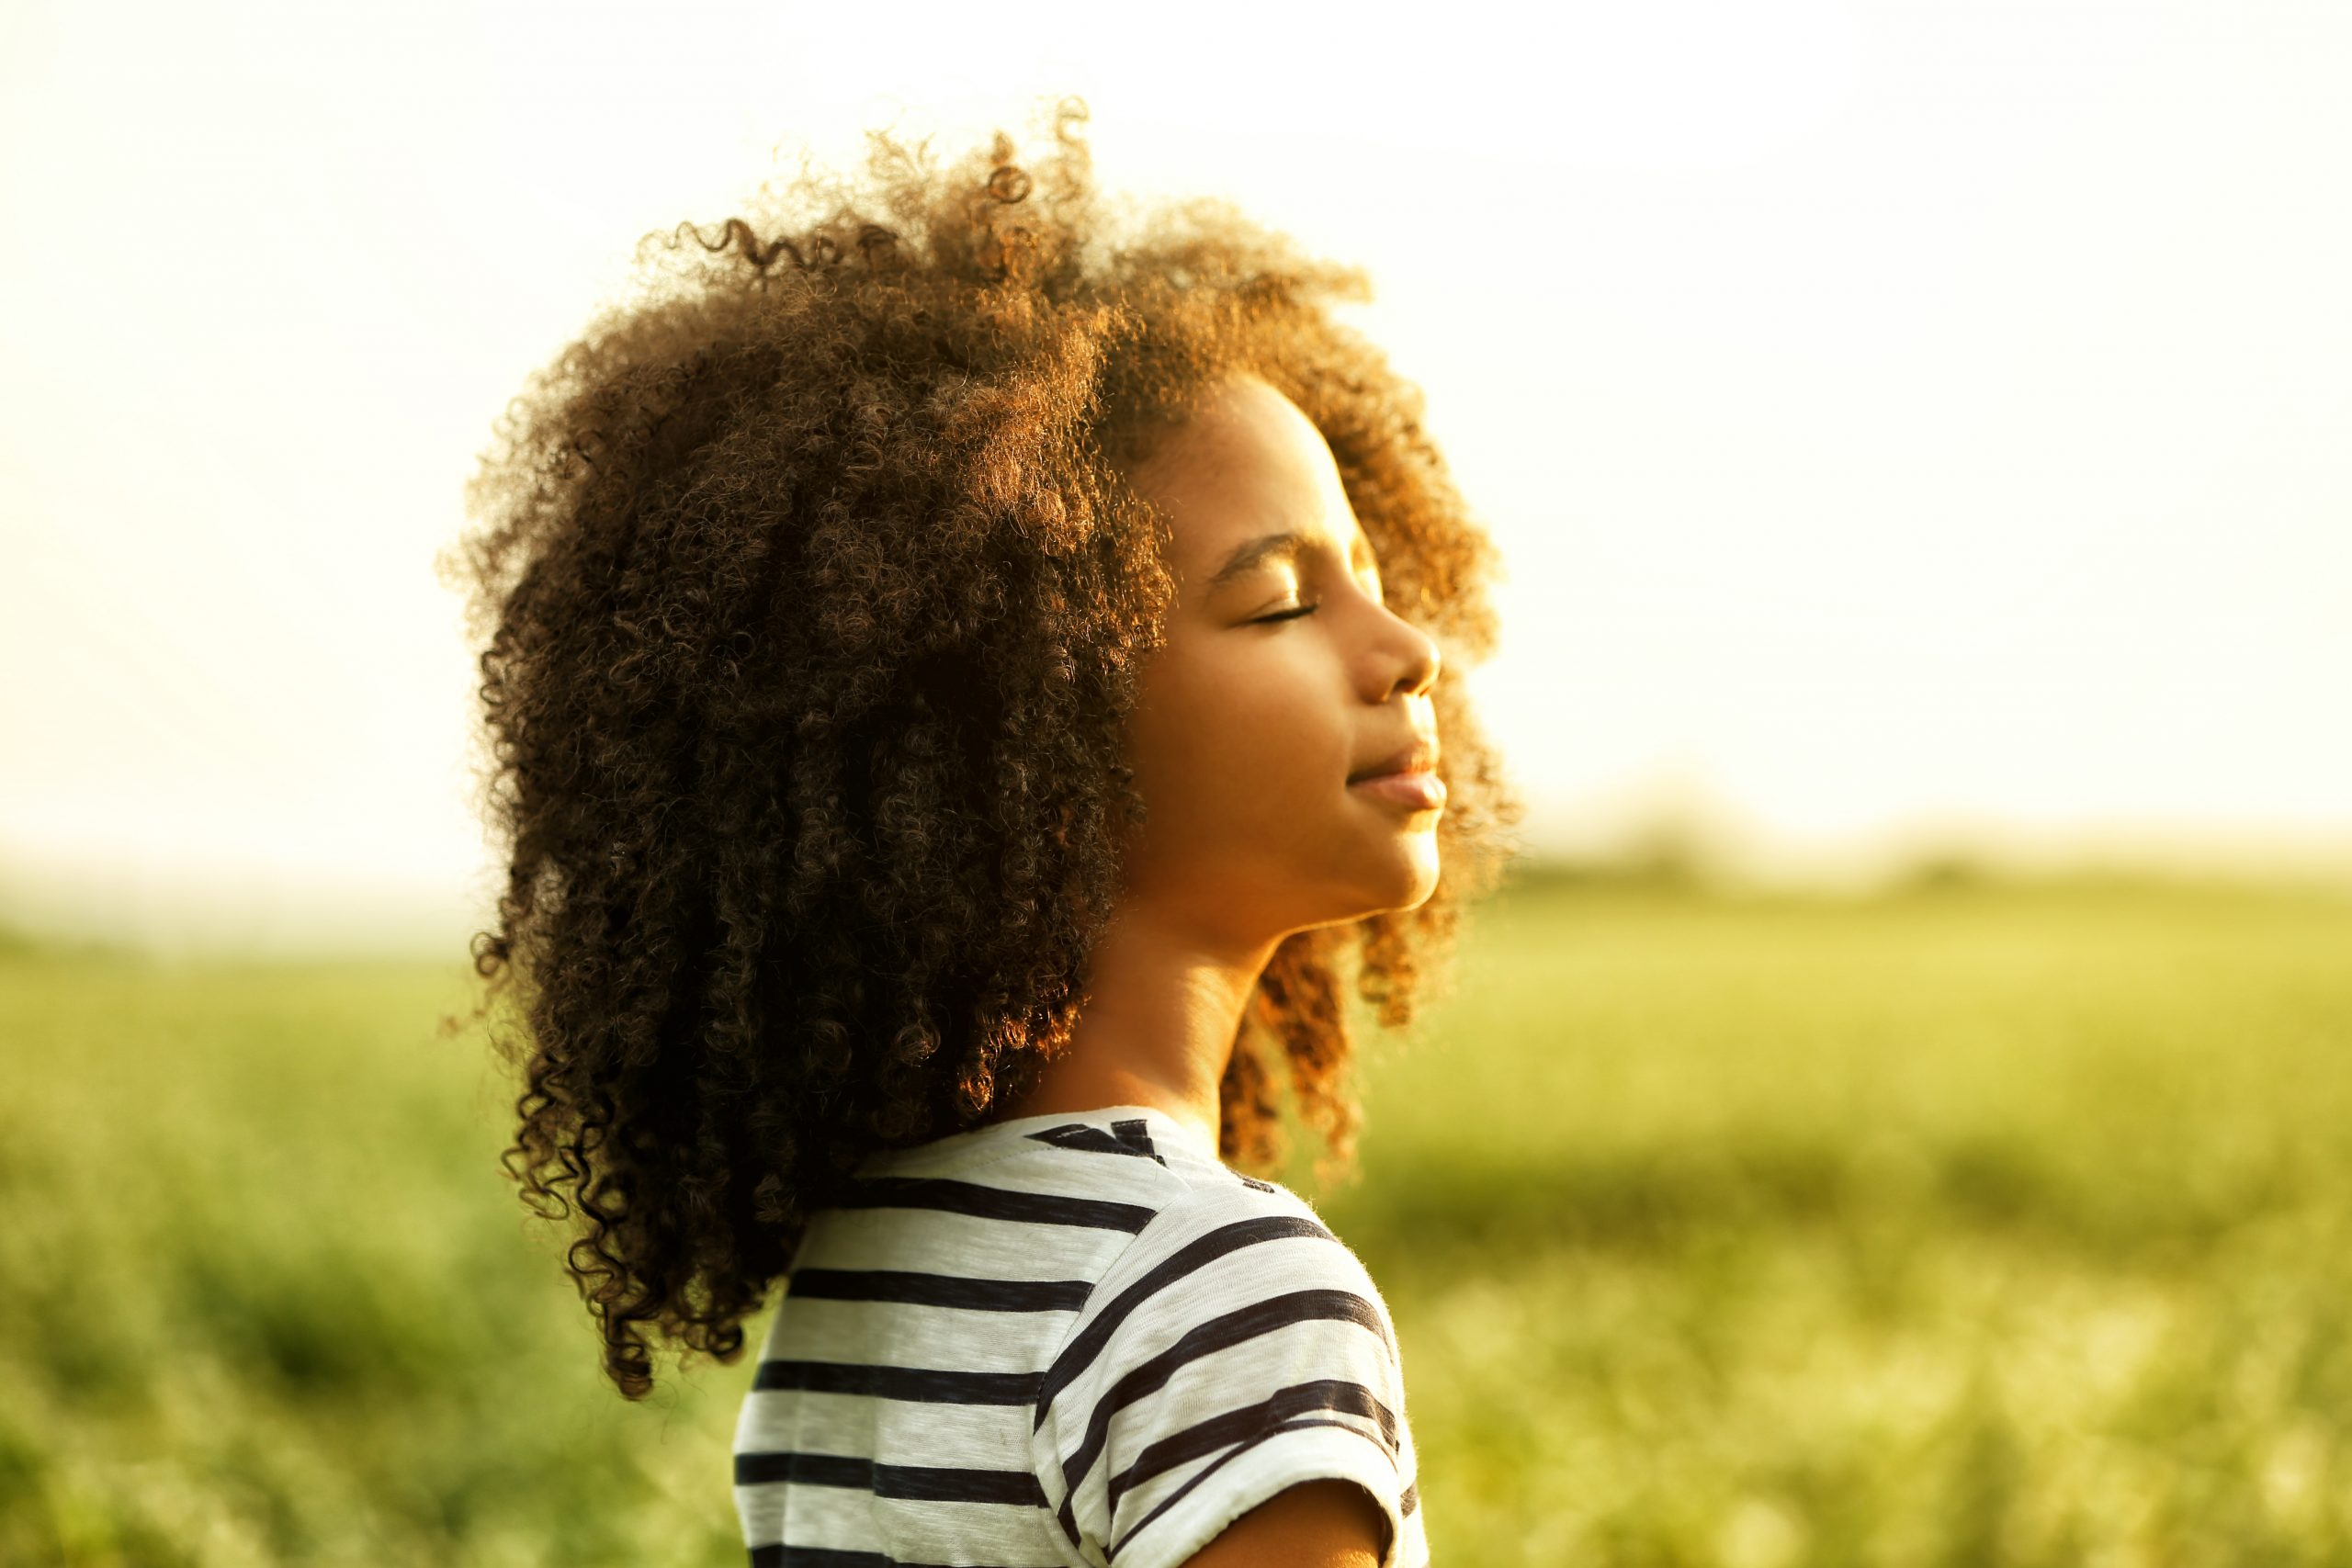 little girl with natural hair